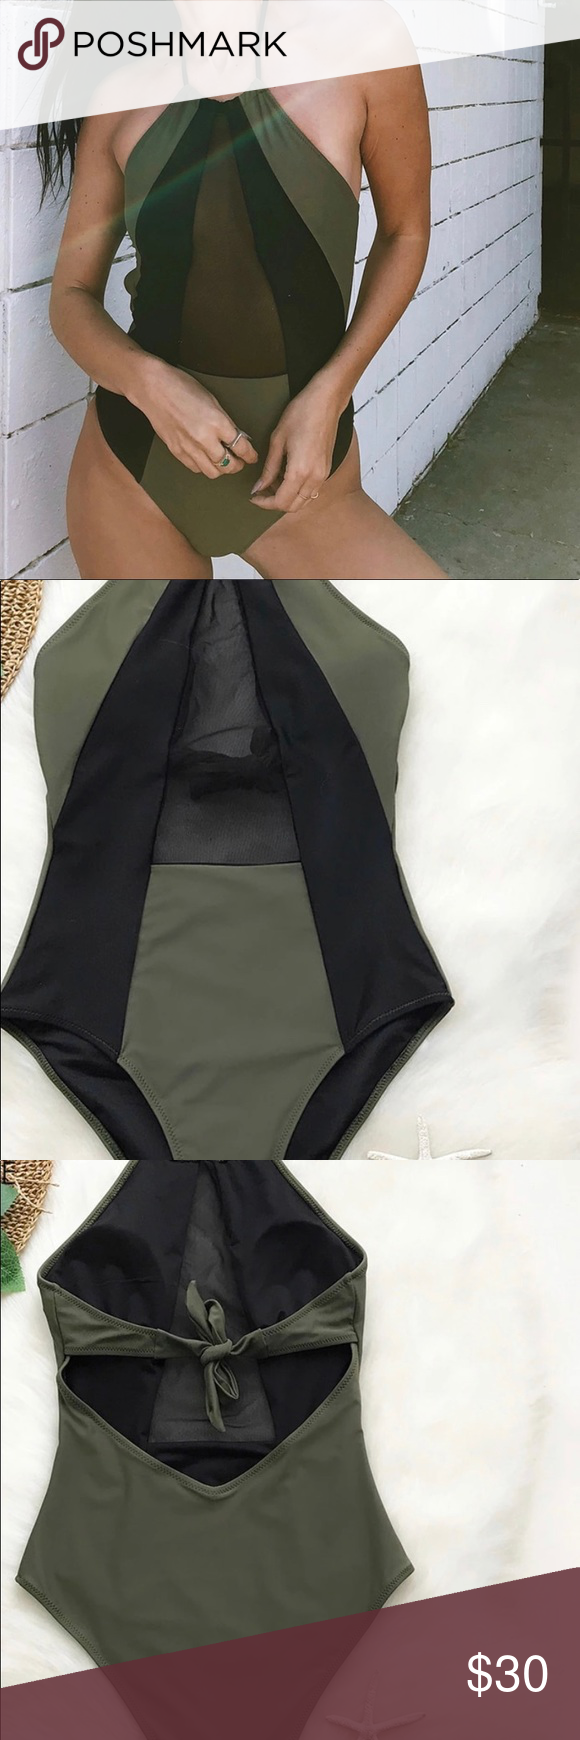 dfc3767f1f0 MONOKINI SWIMSUIT BRAND NEW Army Green And Black Mesh Halter One-piece  Swimsuit. MONOKINI SWIMSUIT. GREAT QUALITY. Swim One Pieces